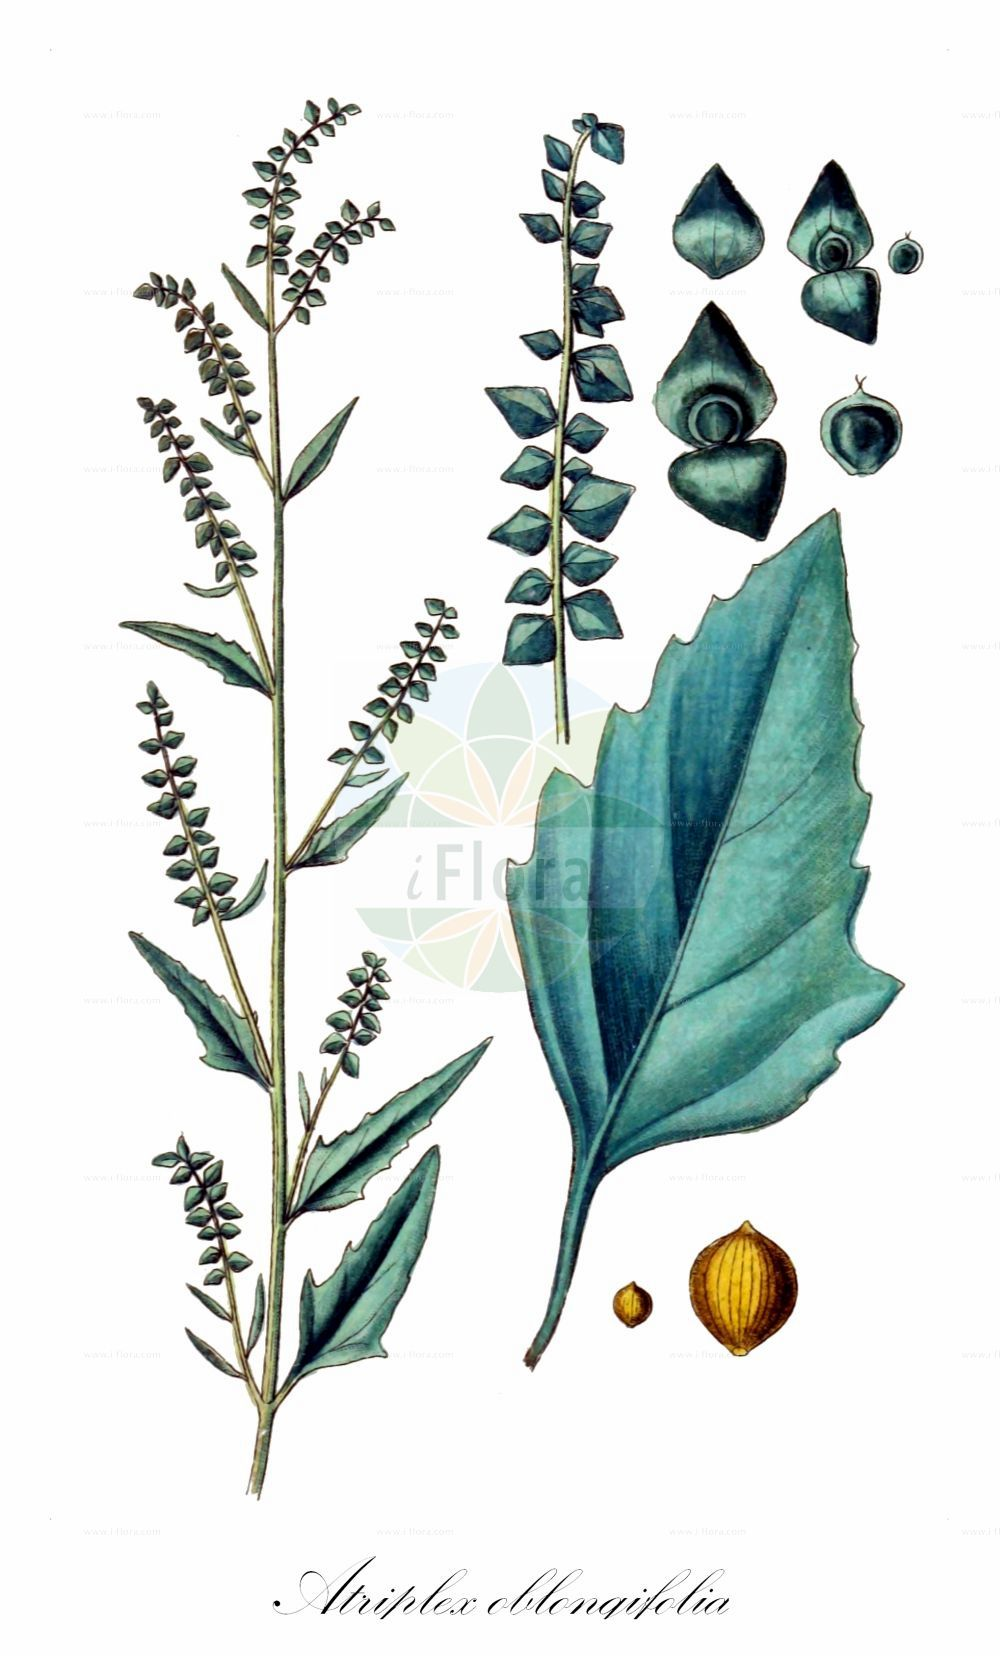 Historische Abbildung von Atriplex oblongifolia (Langblaettrige Melde - Oblongleaf Orache). Das Bild zeigt Blatt, Bluete, Frucht und Same. ---- Historical Drawing of Atriplex oblongifolia (Langblaettrige Melde - Oblongleaf Orache).The image is showing leaf, flower, fruit and seed.(Atriplex oblongifolia,Langblaettrige Melde,Oblongleaf Orache,Atriplex,Melde,Saltbush,Amaranthaceae,Fuchsschwanzgewaechse,Pigweed family,Blatt,Bluete,Frucht,Same,leaf,flower,fruit,seed,Sturm (1796f))